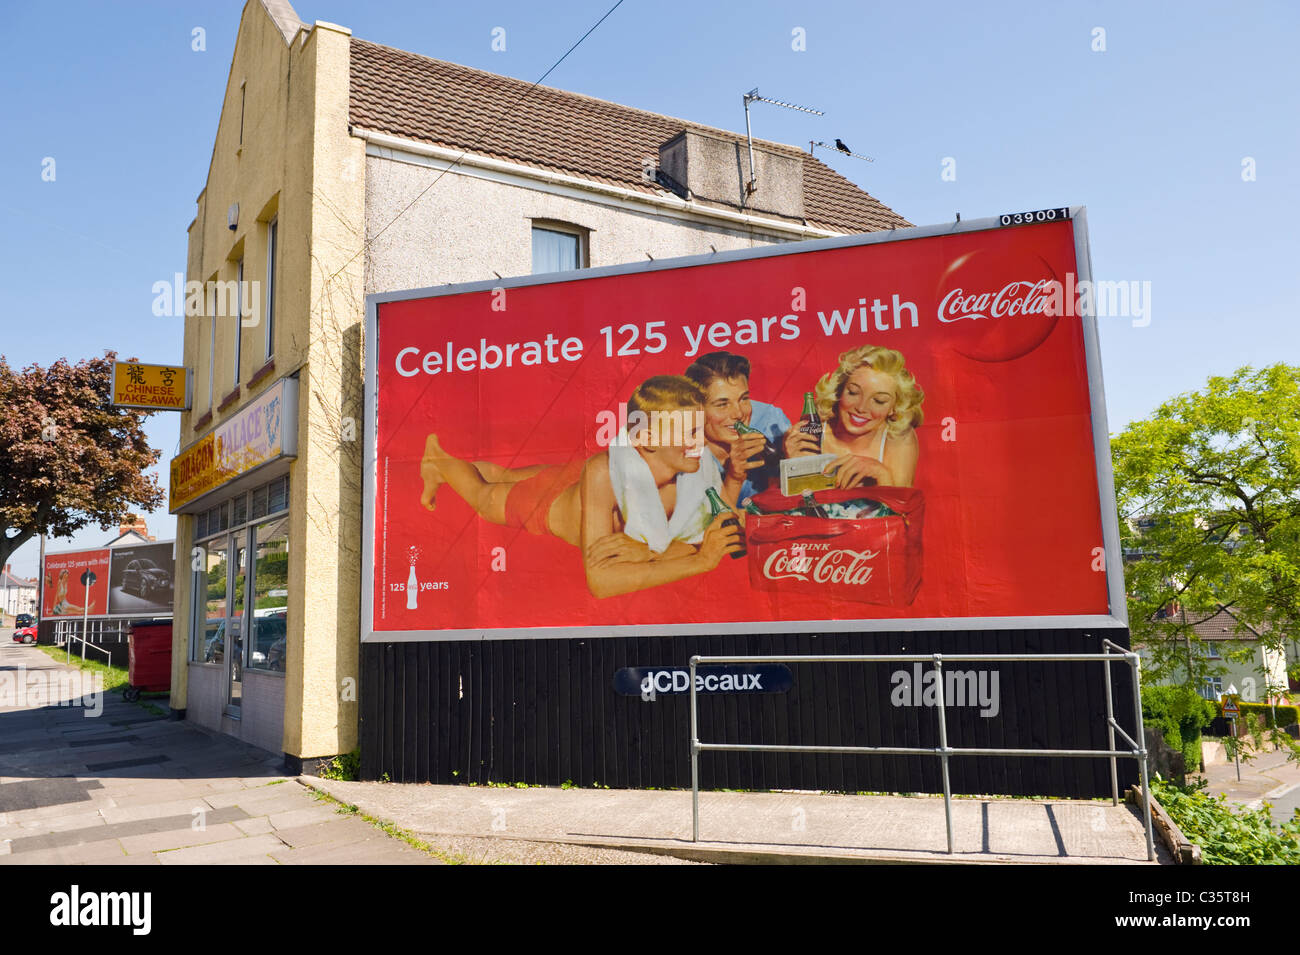 Advertising billboard on JCDecaux site advert celebrating 125 years of COCA COLA - Stock Image